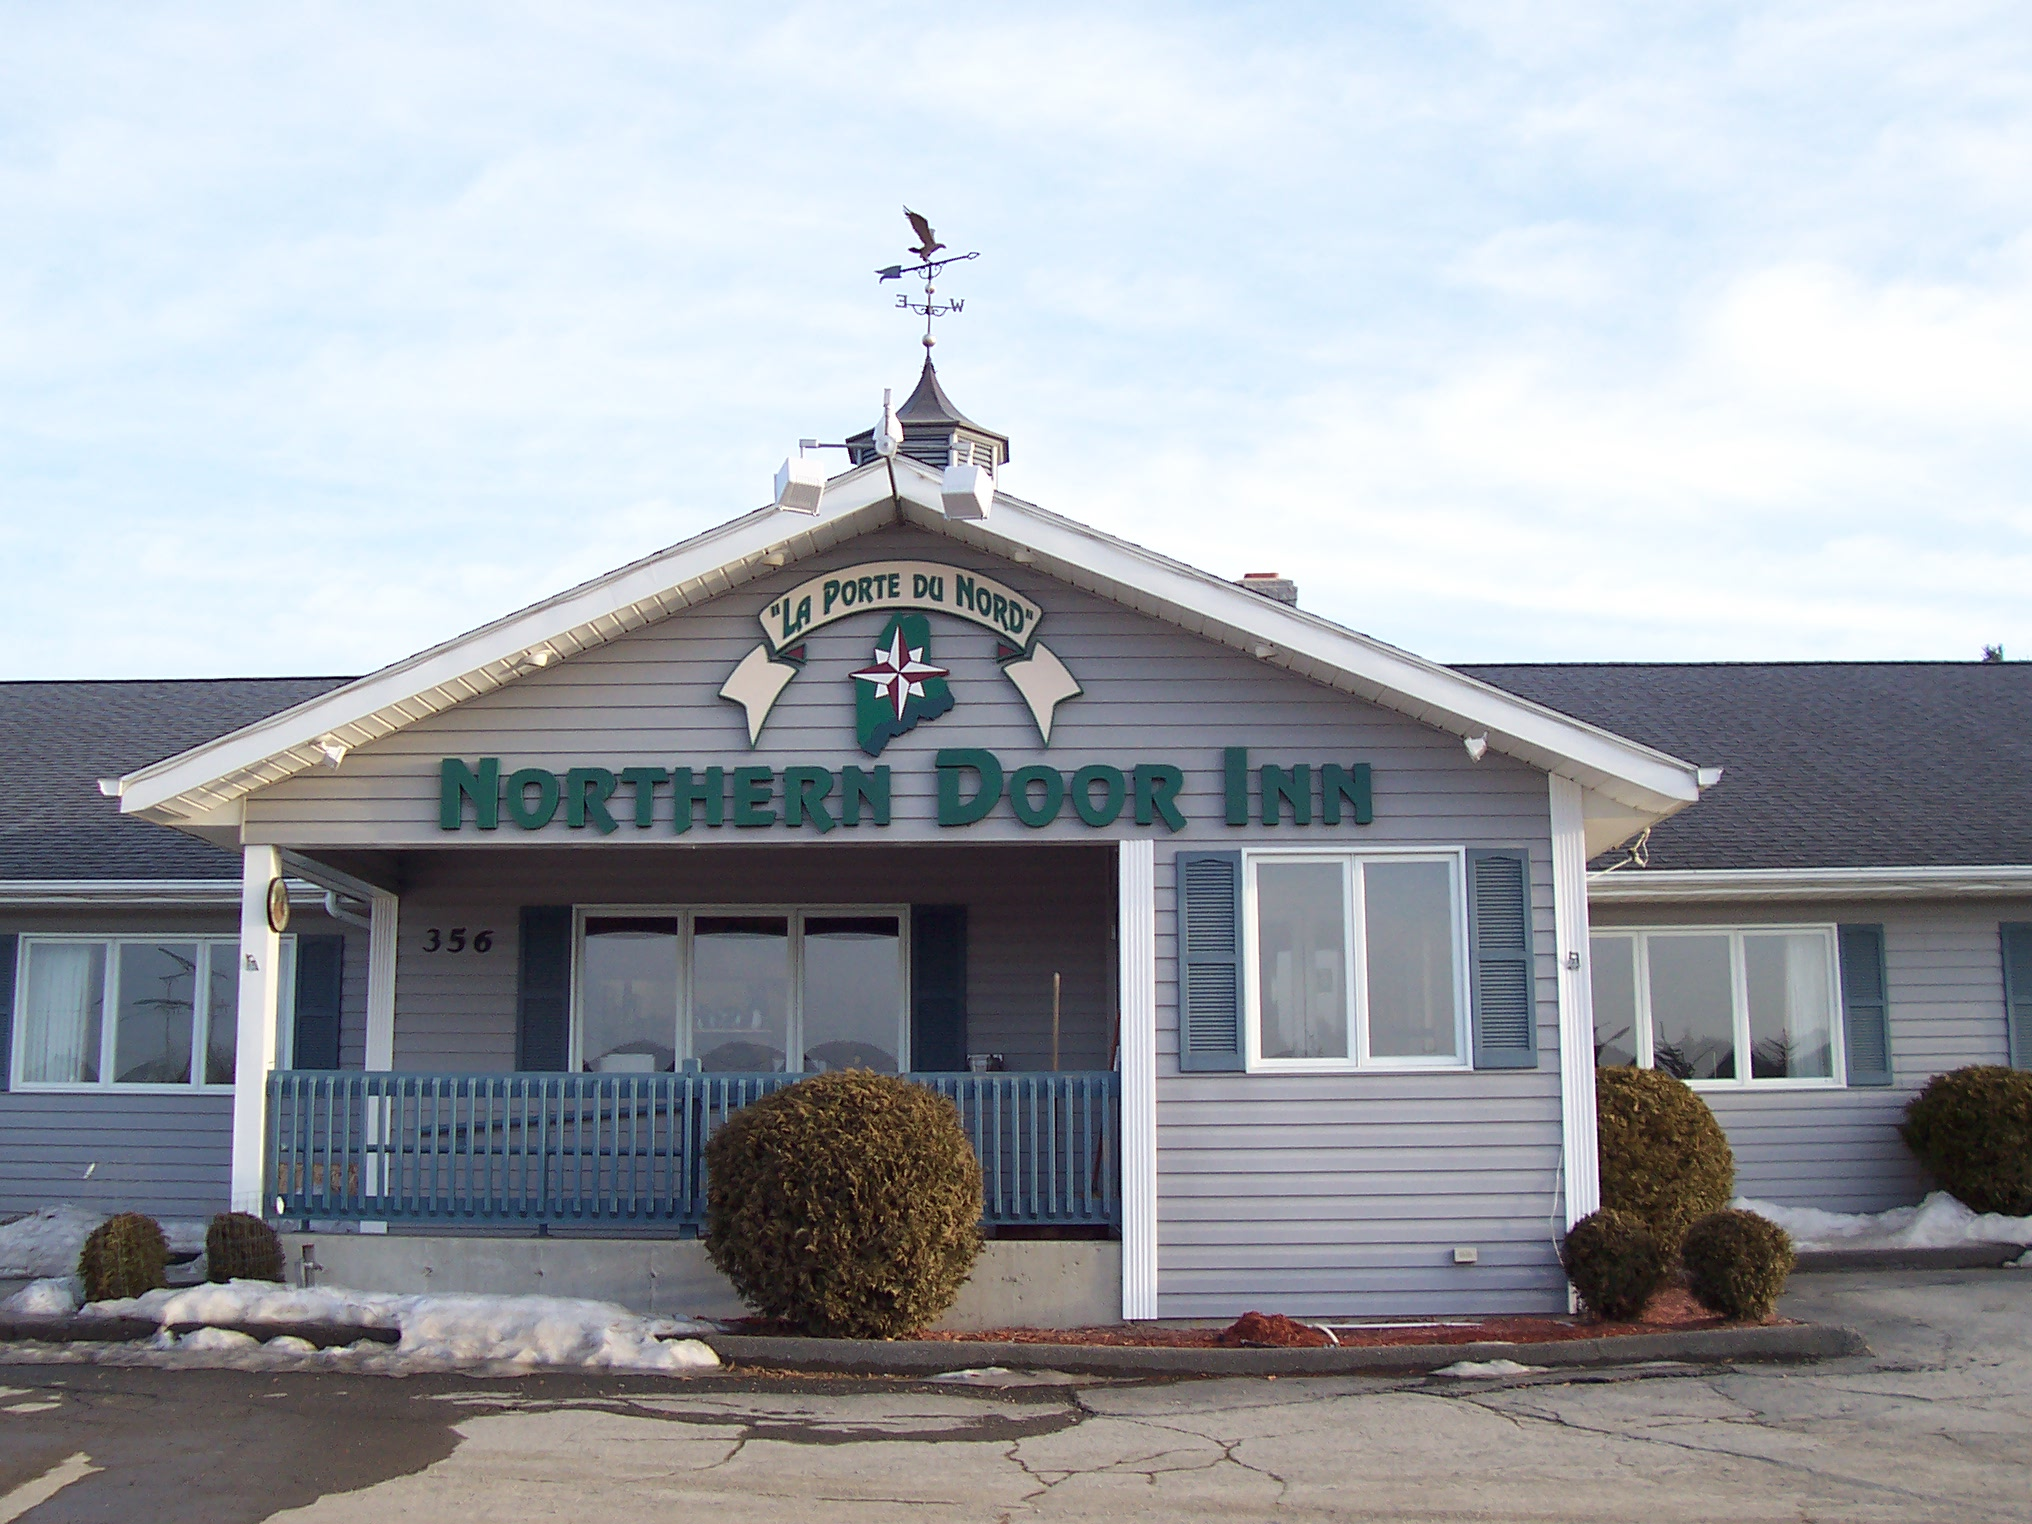 The  Northern Door Inn